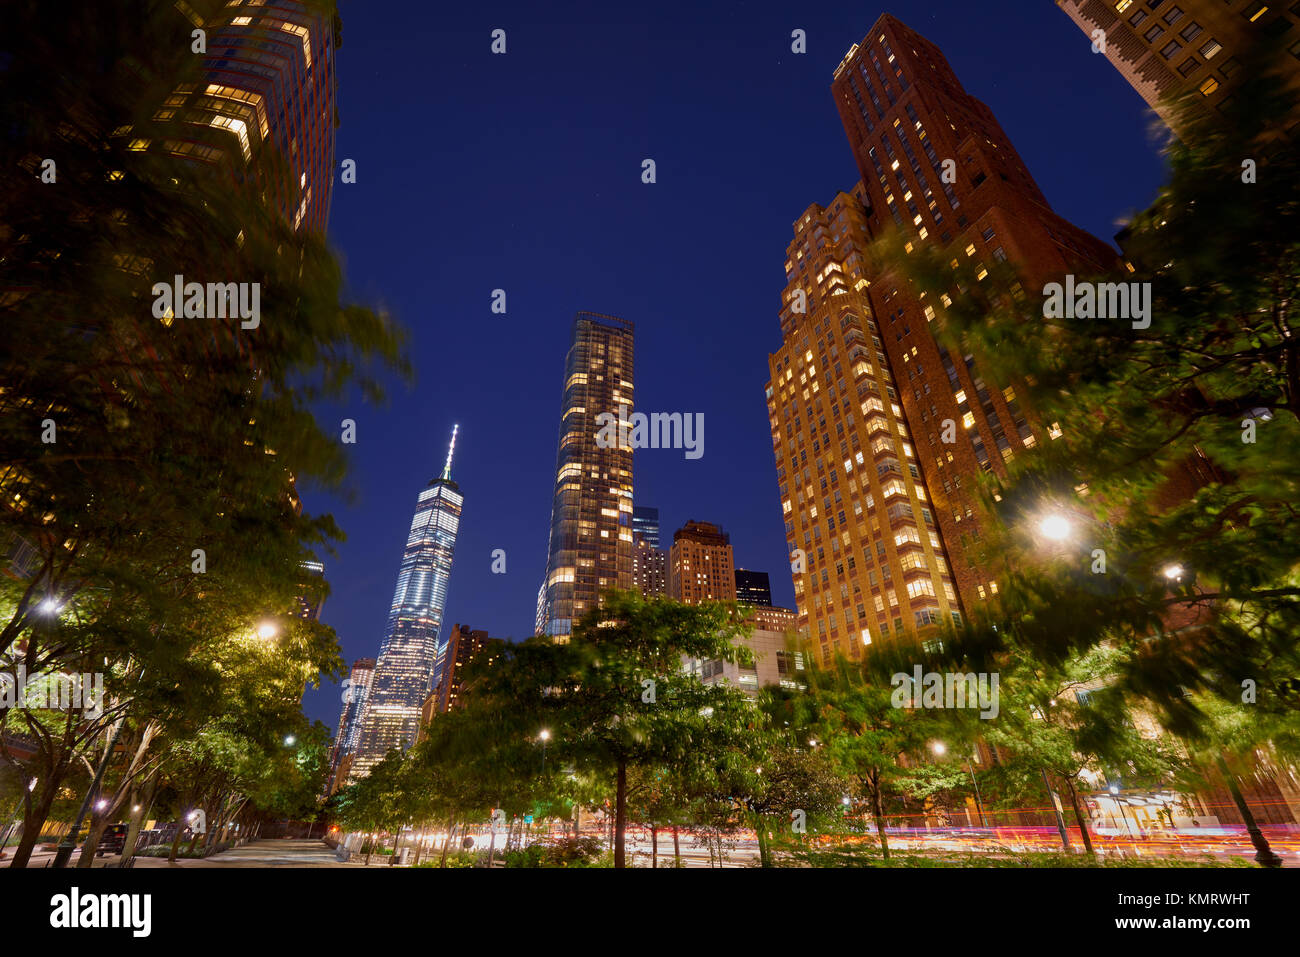 West Street dans le Lower Manhattan avec son skyscrapeers (50 rue de l'Ouest et One World Trade Center) au crépuscule. Photo Stock